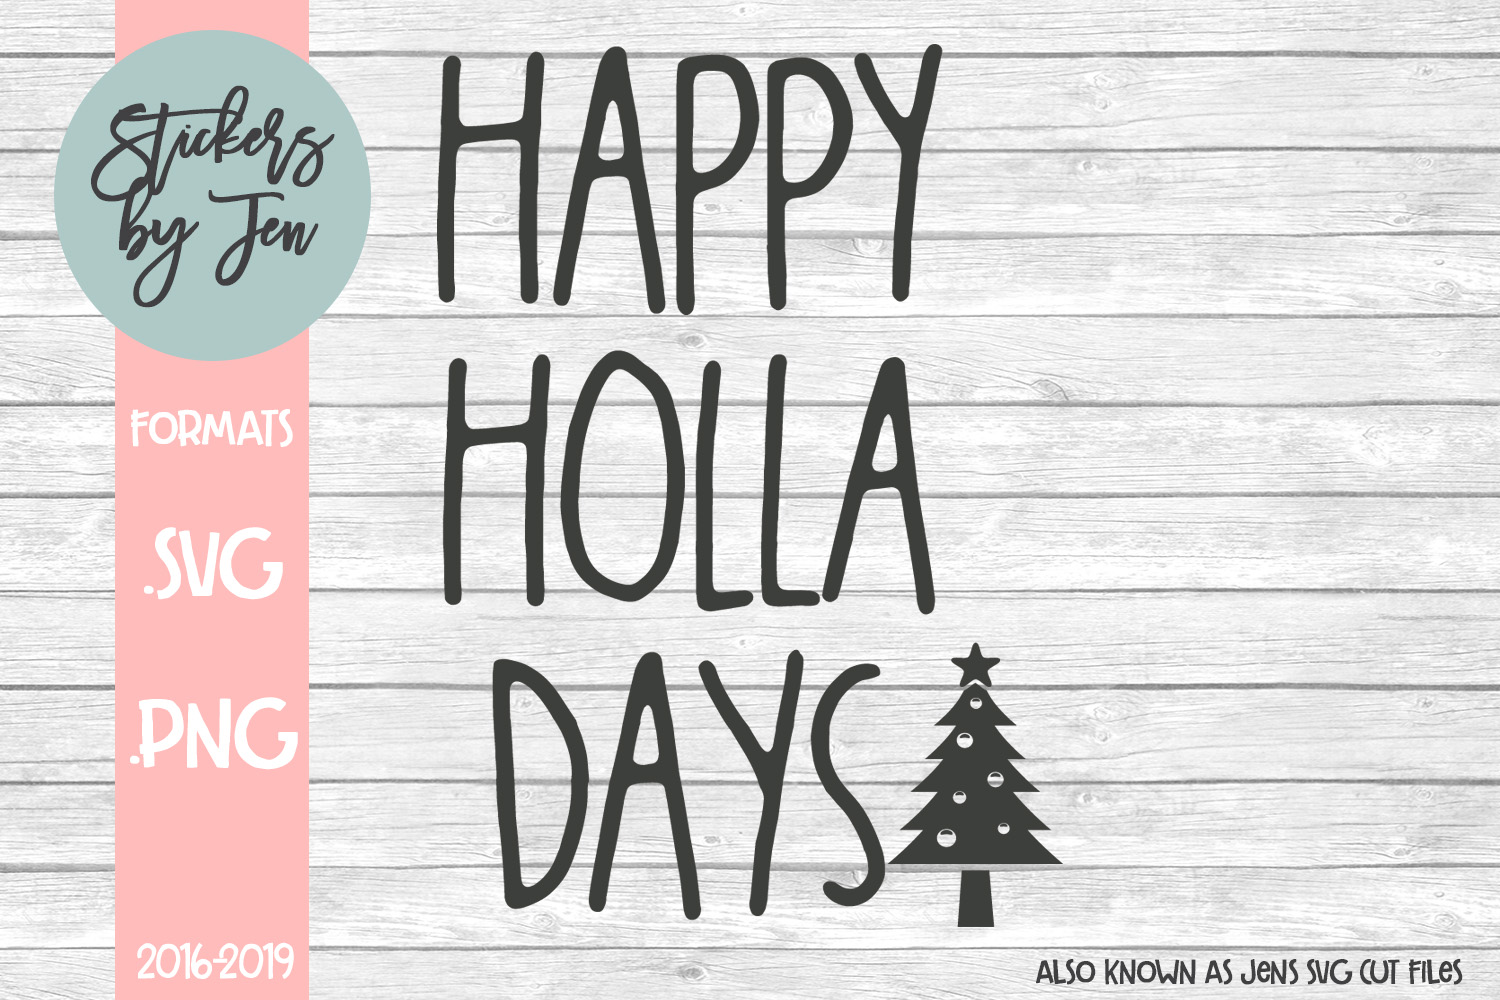 Download Free Happy Hola Days Svg Graphic By Stickers By Jennifer Creative for Cricut Explore, Silhouette and other cutting machines.